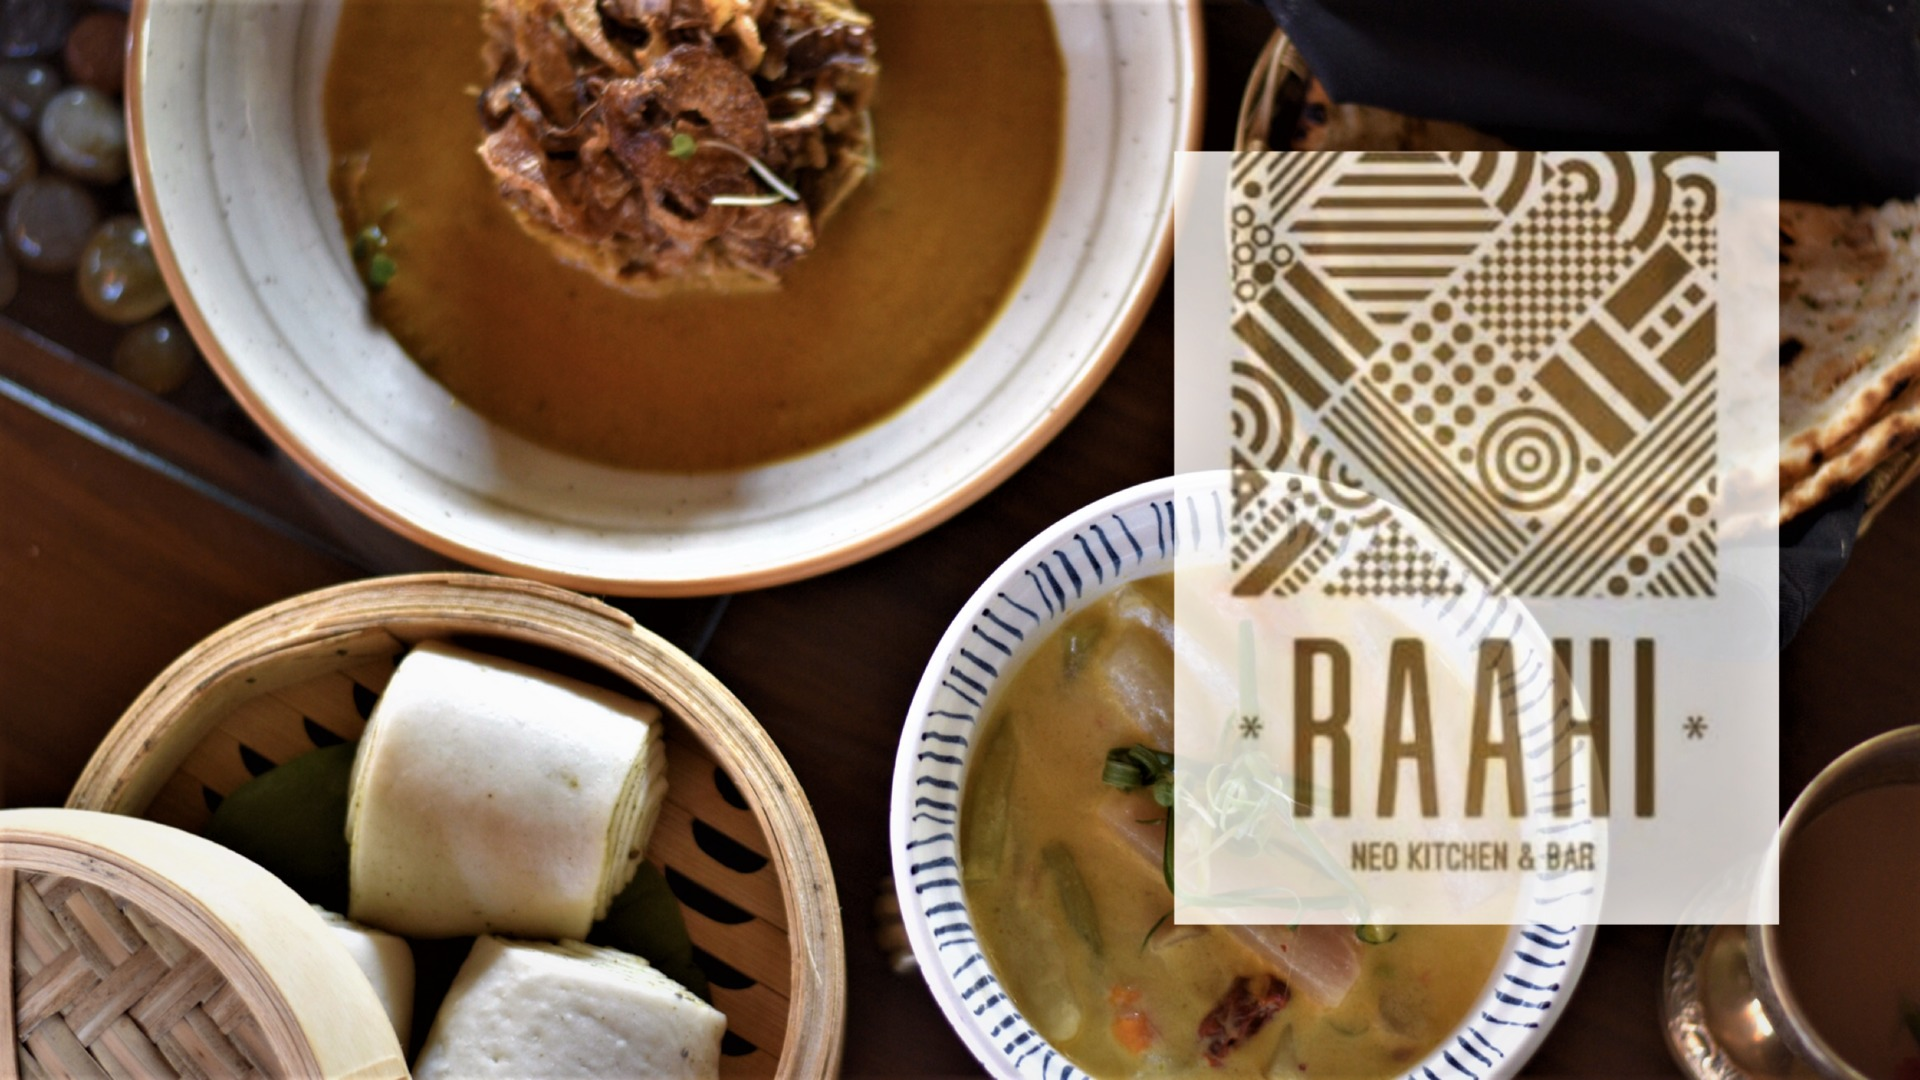 Raahi | Neo Kitchen & Bar image